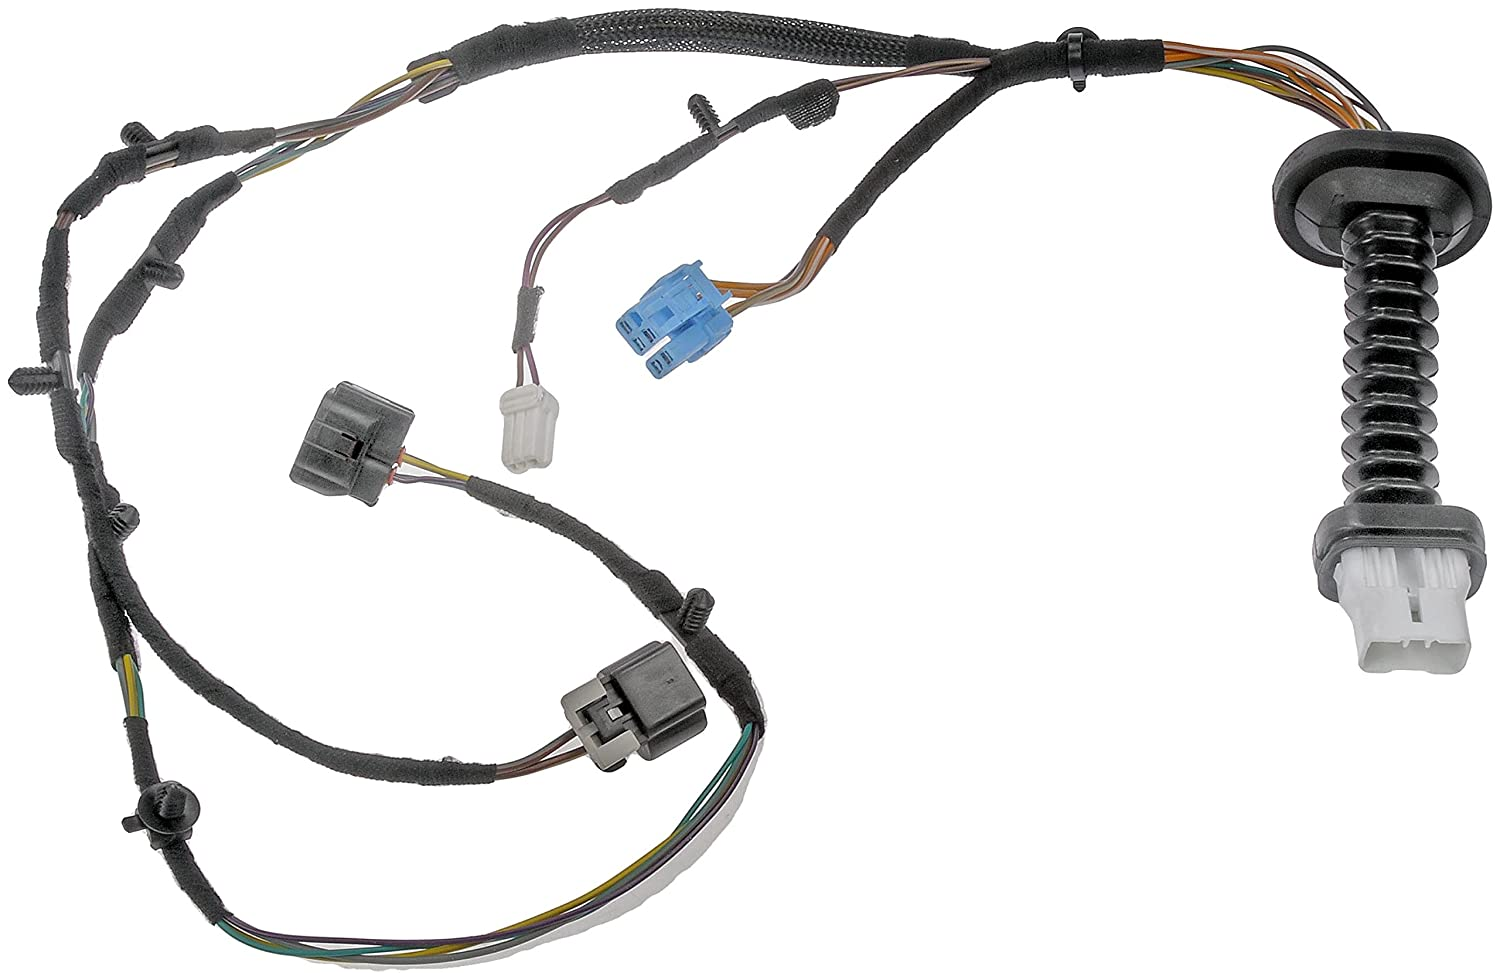 81c1LCEp7lL._SL1500_ amazon com dorman 645 506 door harness with connectors automotive Dodge Transmission Wiring Harness at bayanpartner.co